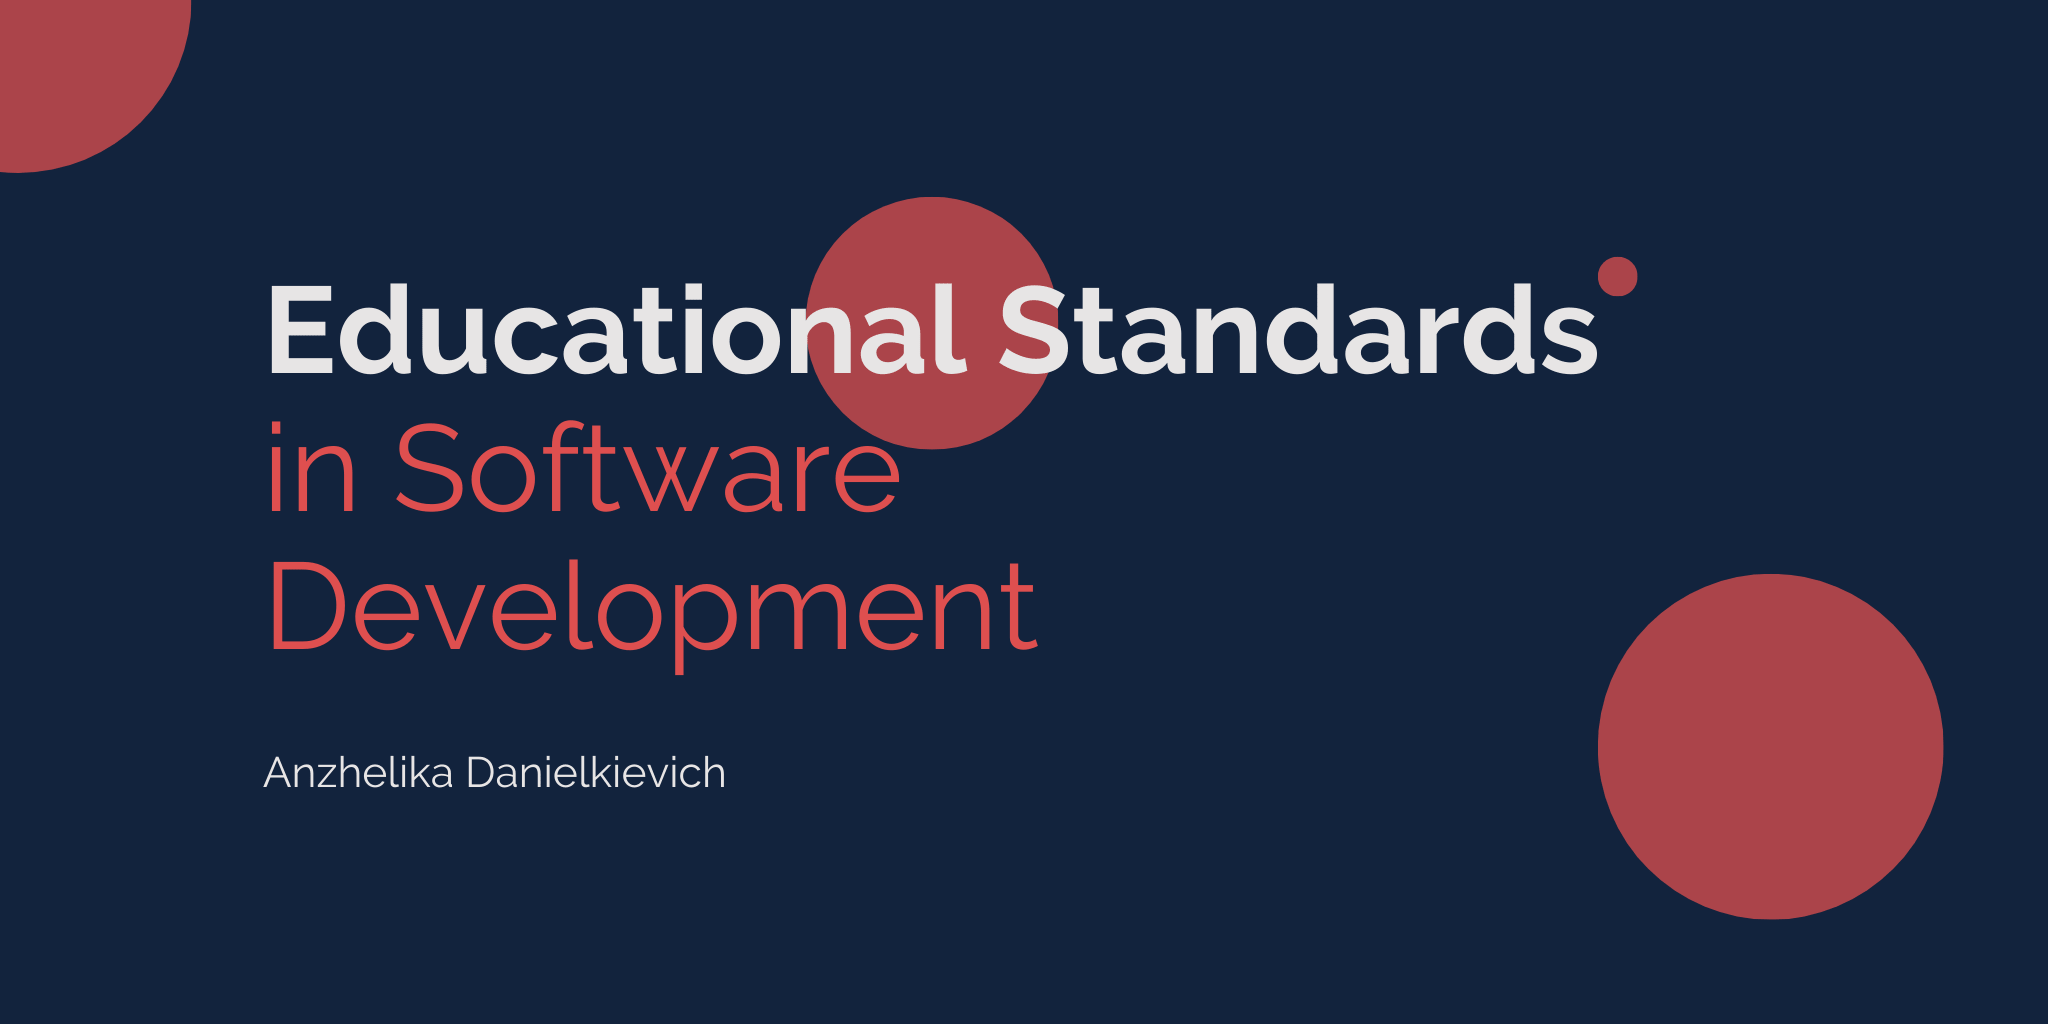 Educational Standards in Software Development: Why They Matter